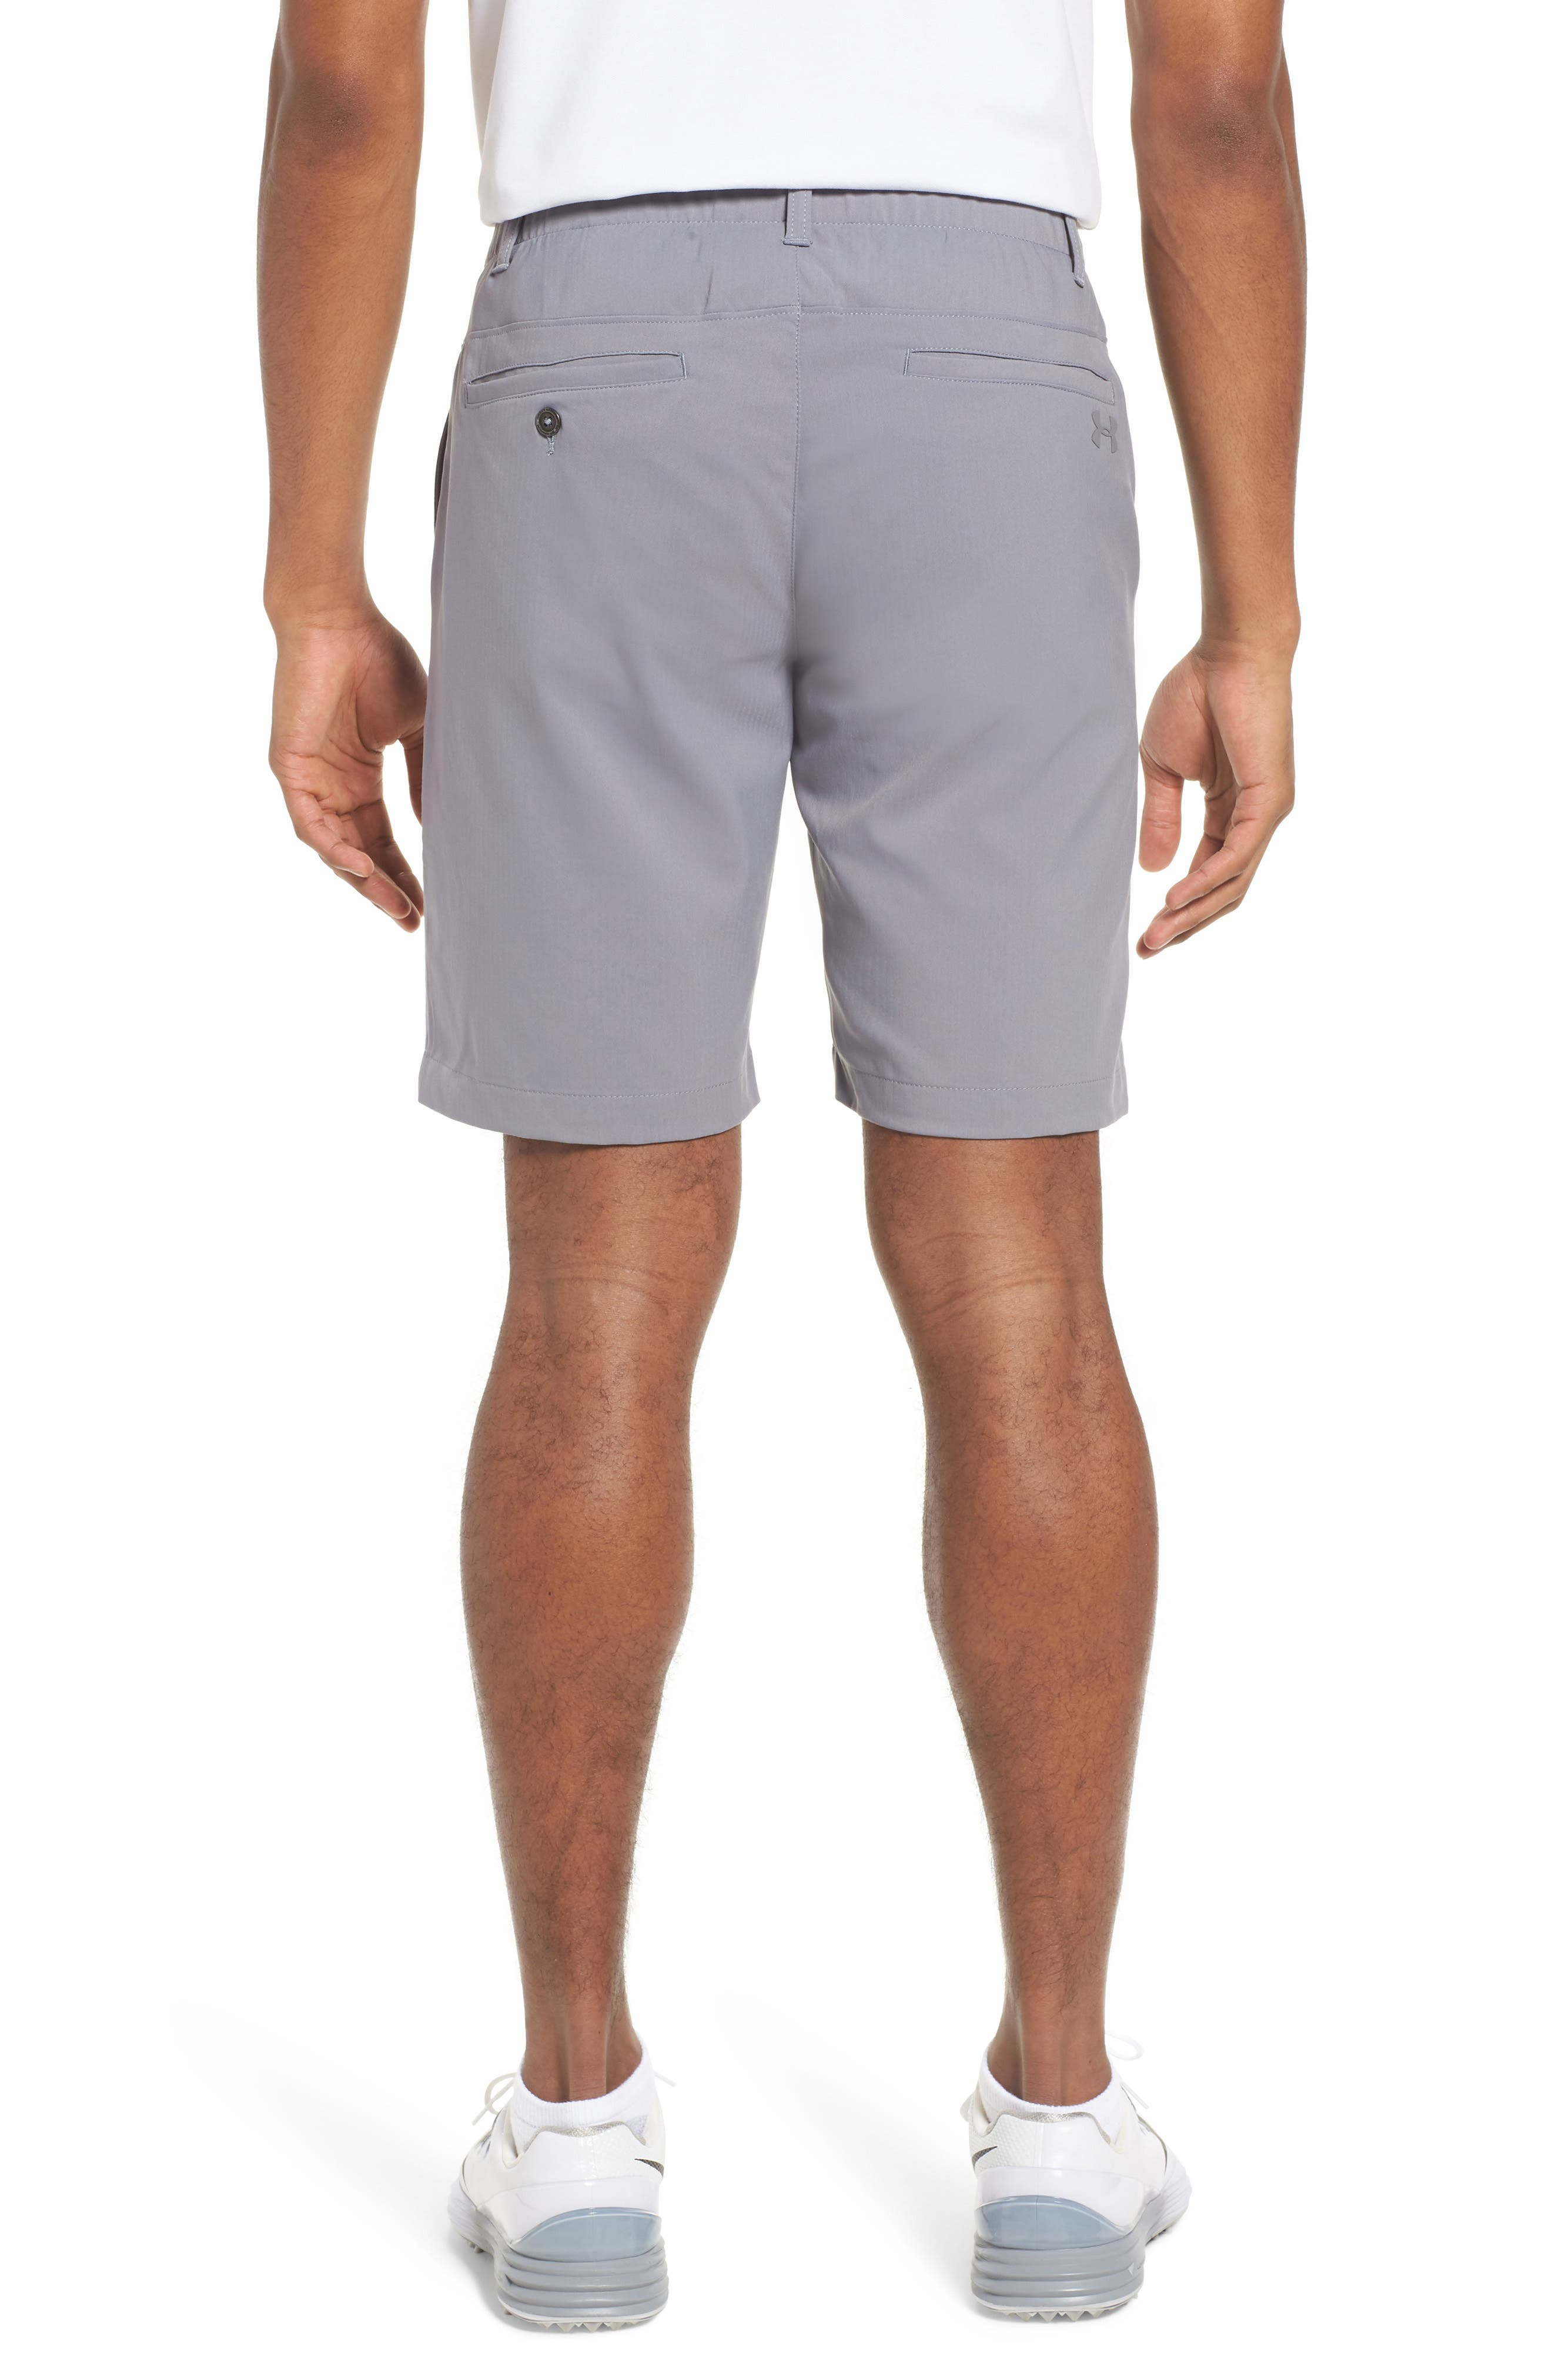 Takeover Regular Fit Golf Shorts,                             Alternate thumbnail 2, color,                             Zinc Grey